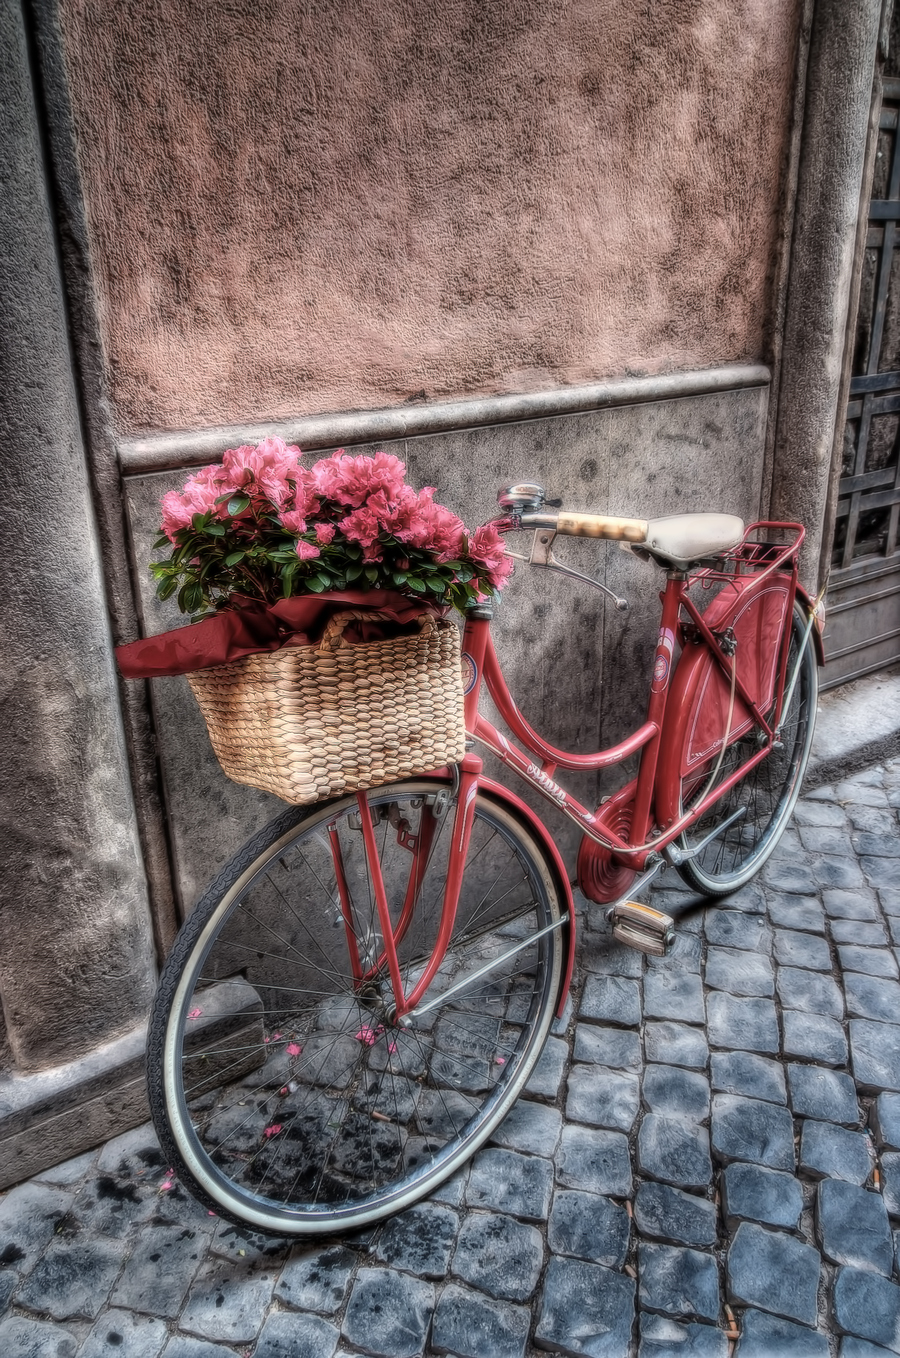 Flowers on the bicycle